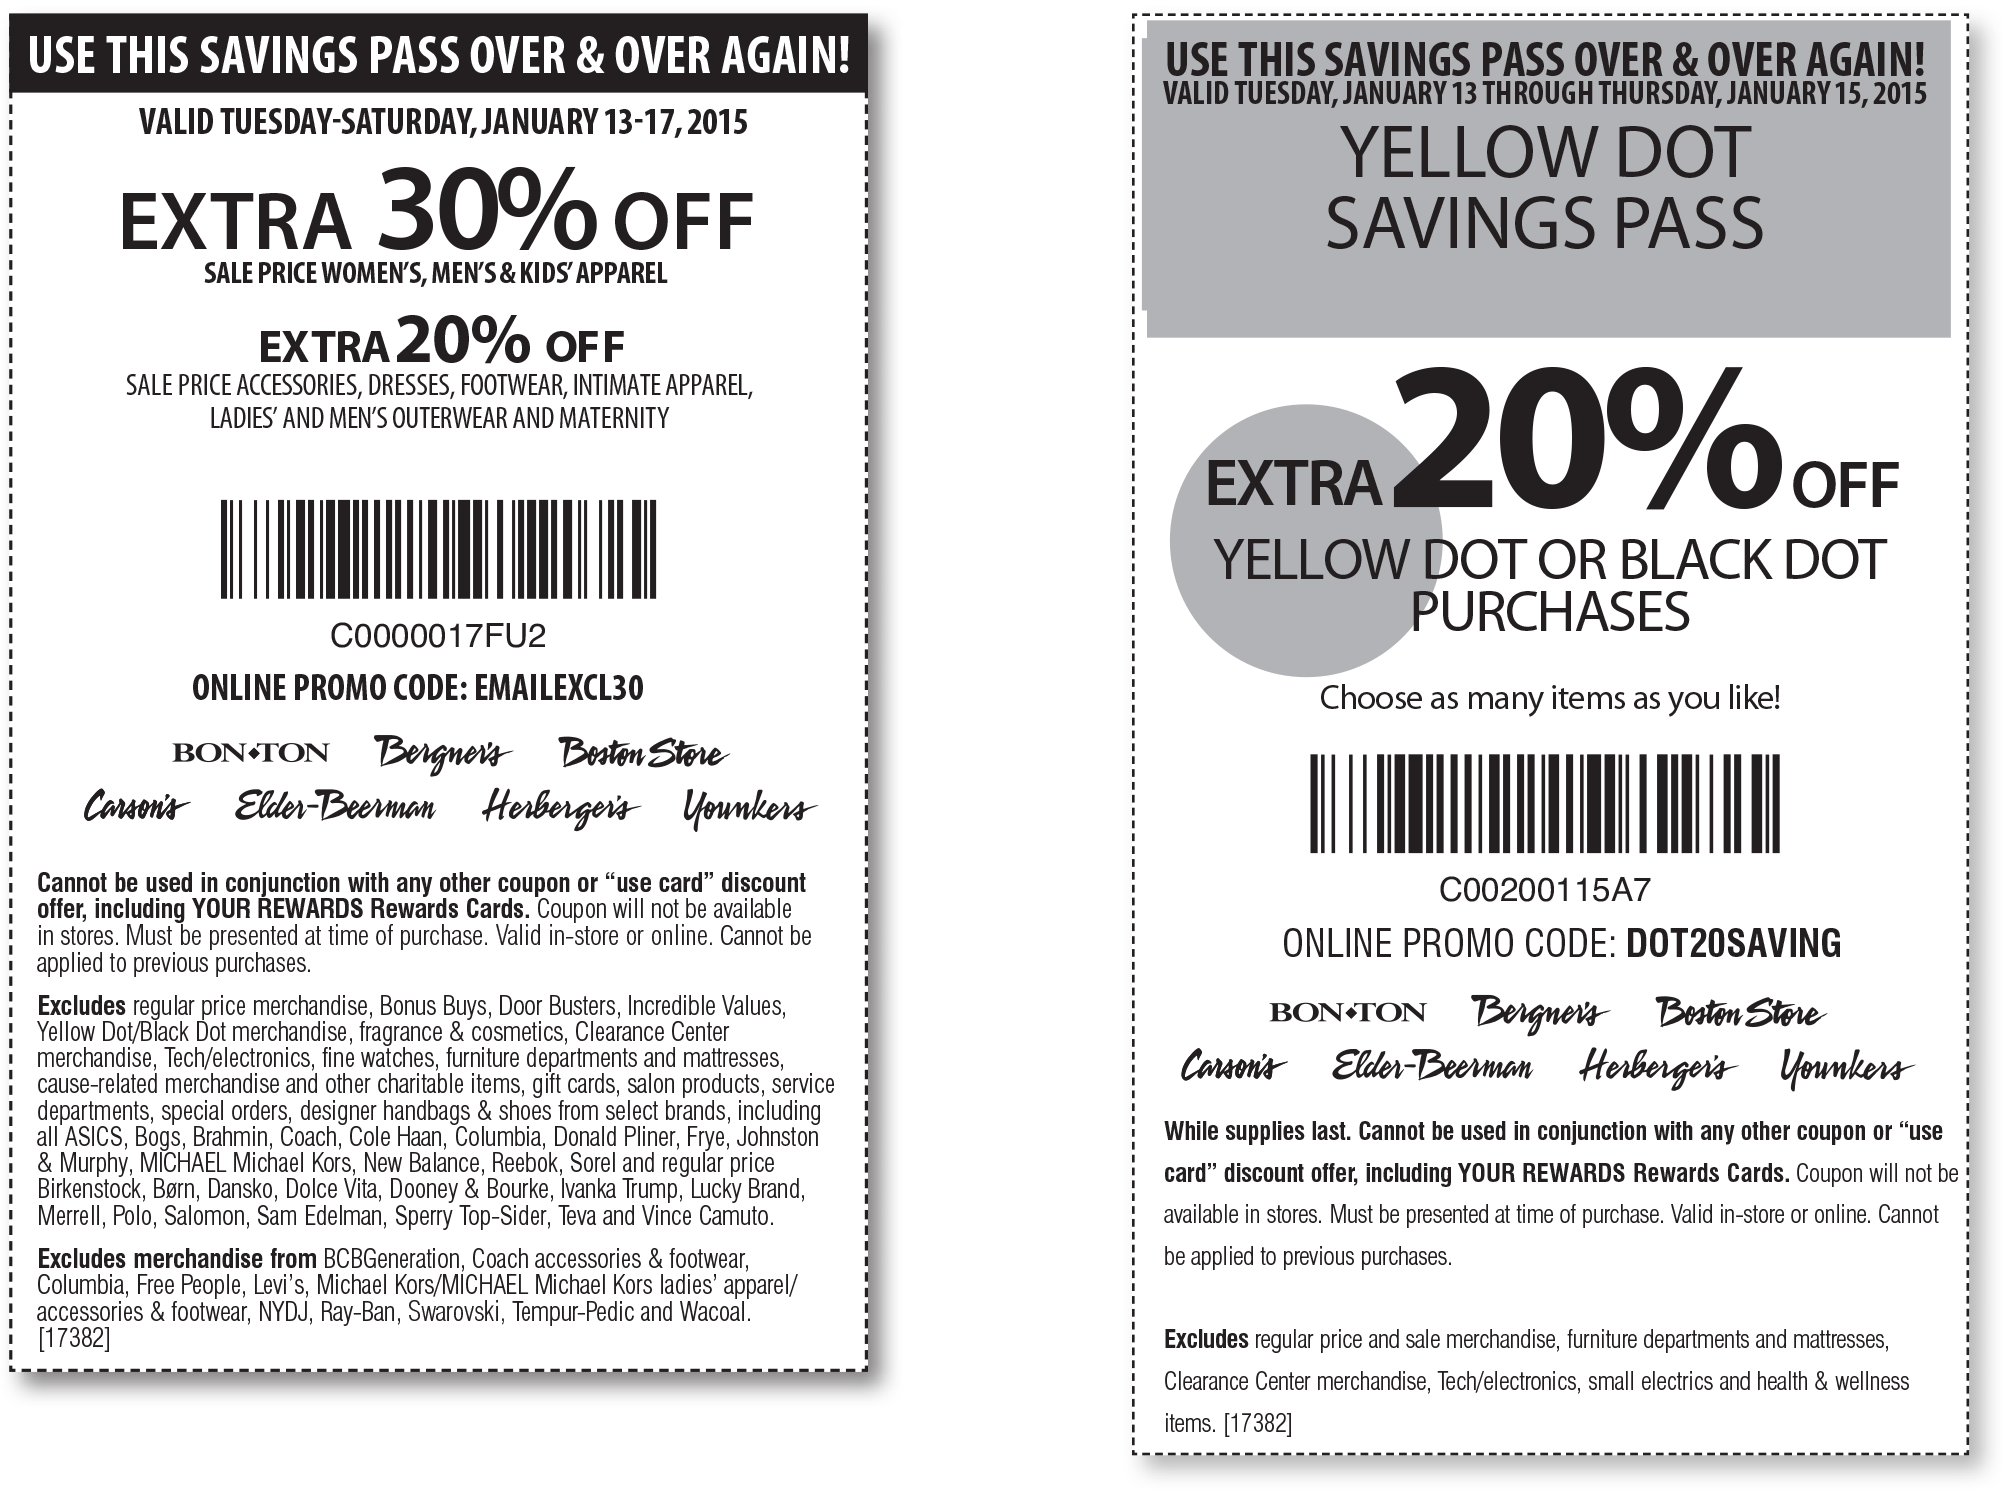 Bon Ton Coupon August 2017 Extra 30% off sale apparel at Carsons, Bon Ton & sister stores, or online via promo EMAILEXCL30